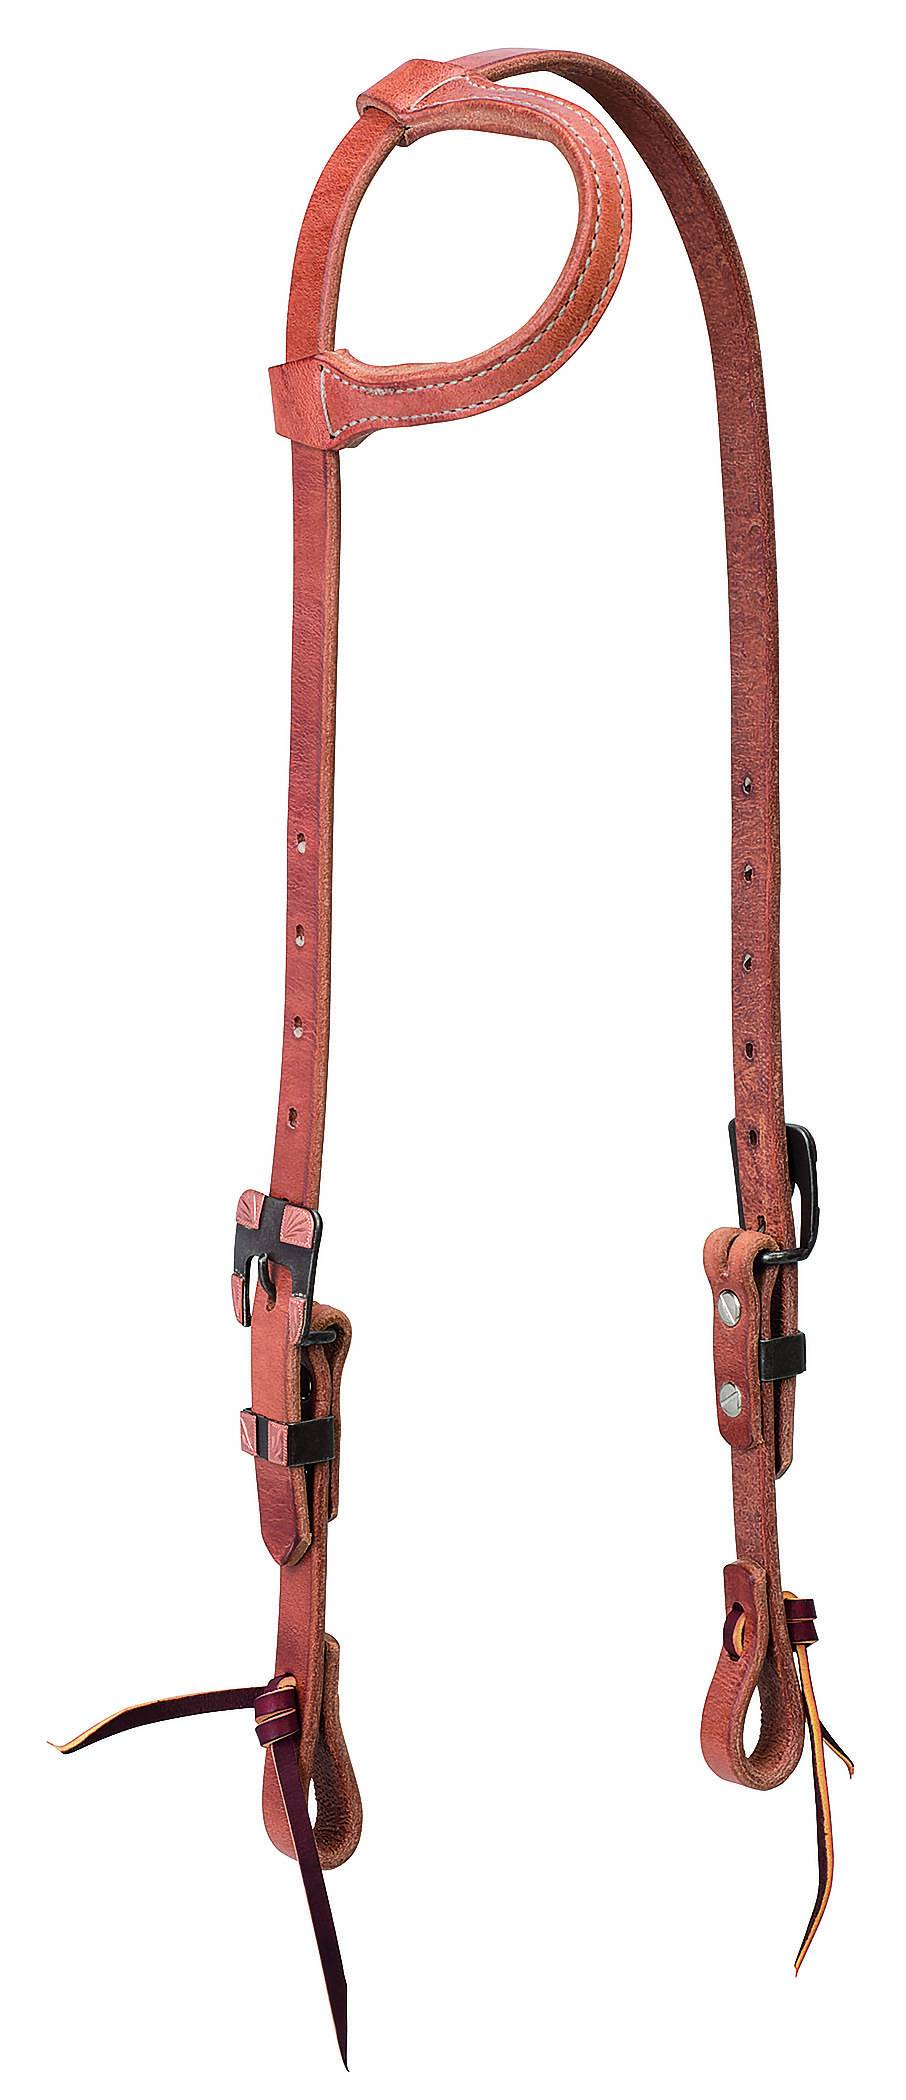 Weaver Protack Sliding Ear Headstall With Brown Hardware